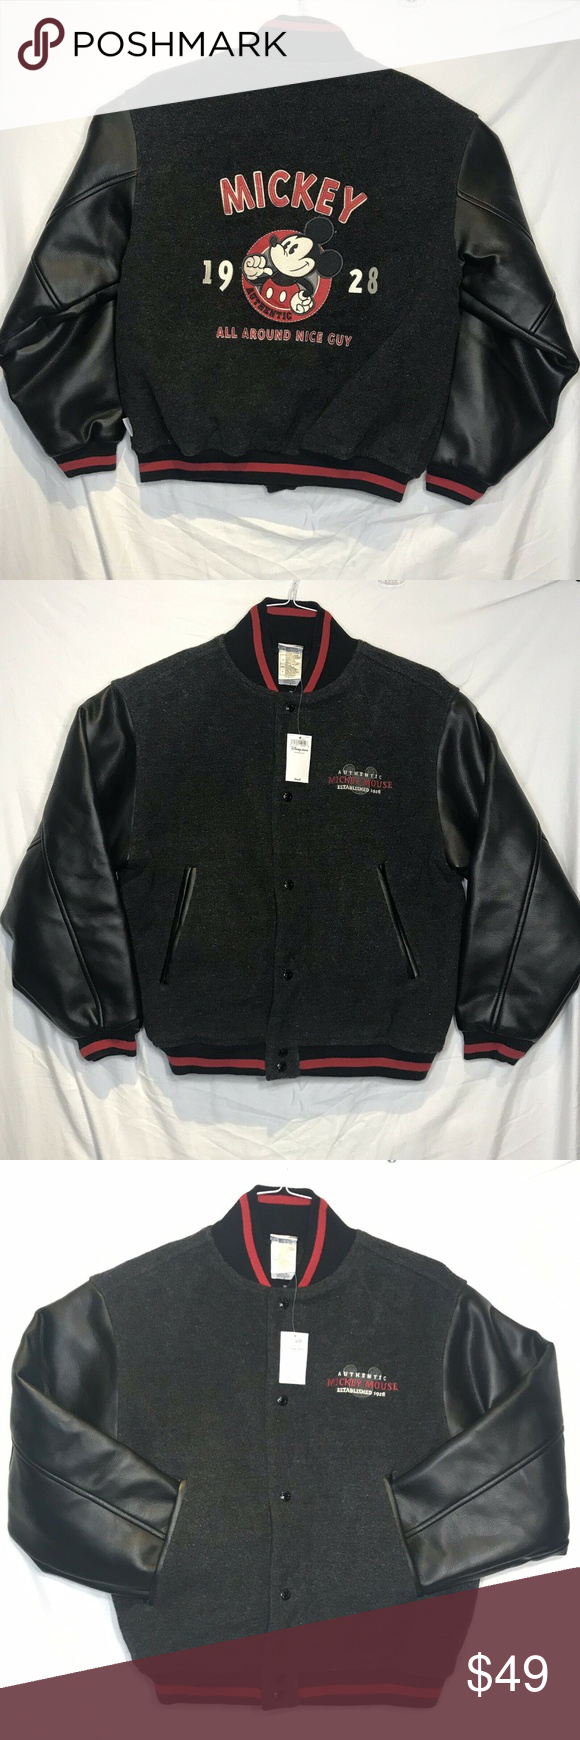 NWT Mickey Disney Store Small Wool Varsity Jacket NWT Vintage Mickey Disney Store Exclusive Letterman Varsity Jacket Wool Small.  Measurements in photos  Condition is New. Shipped with USPS Priority Mail. Disney Jackets & Coats Bomber & Varsity #varsityjacketoutfit